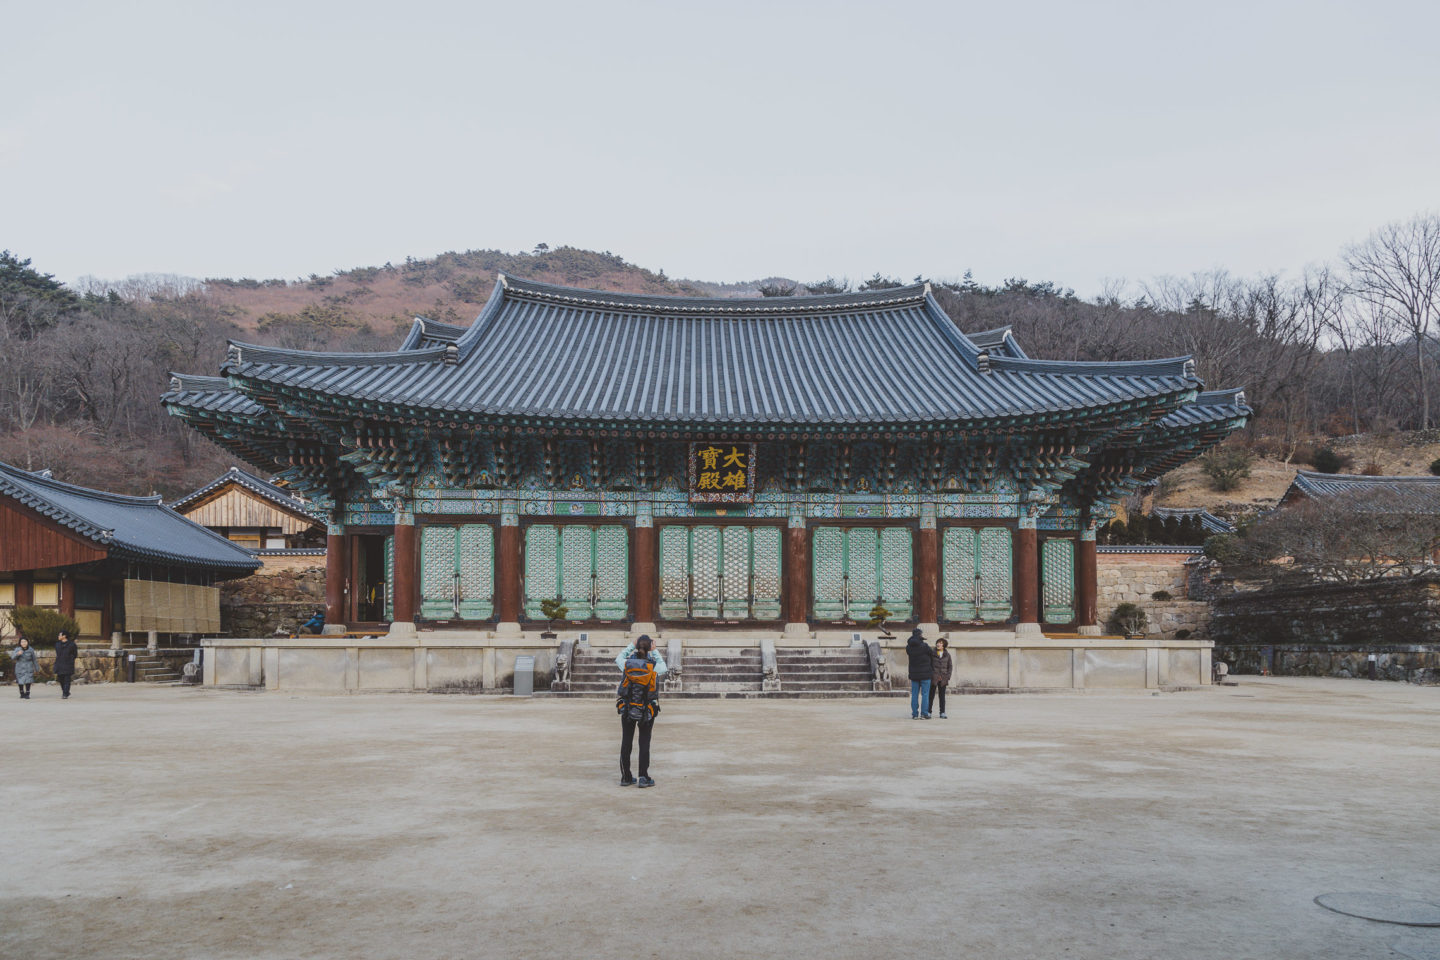 songgwangsa temple in jogyesan